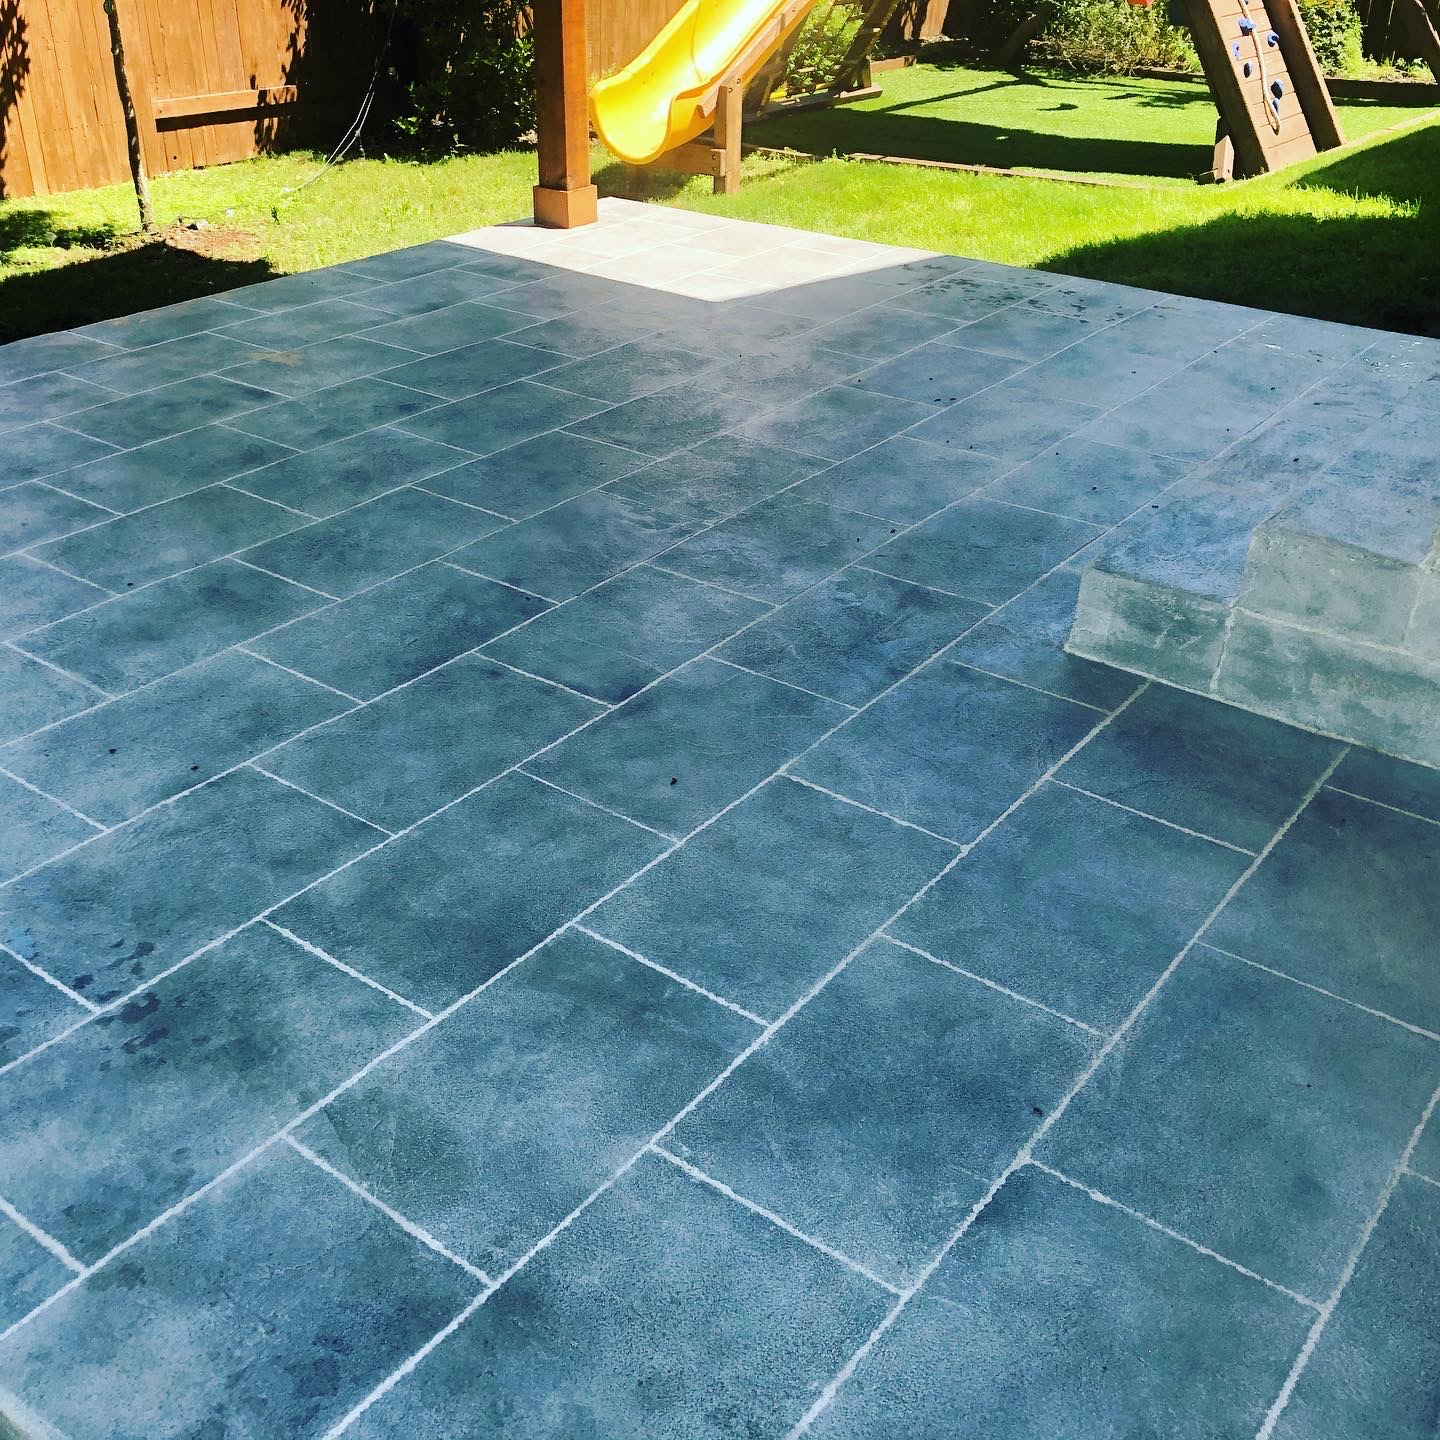 Patio with Overlay